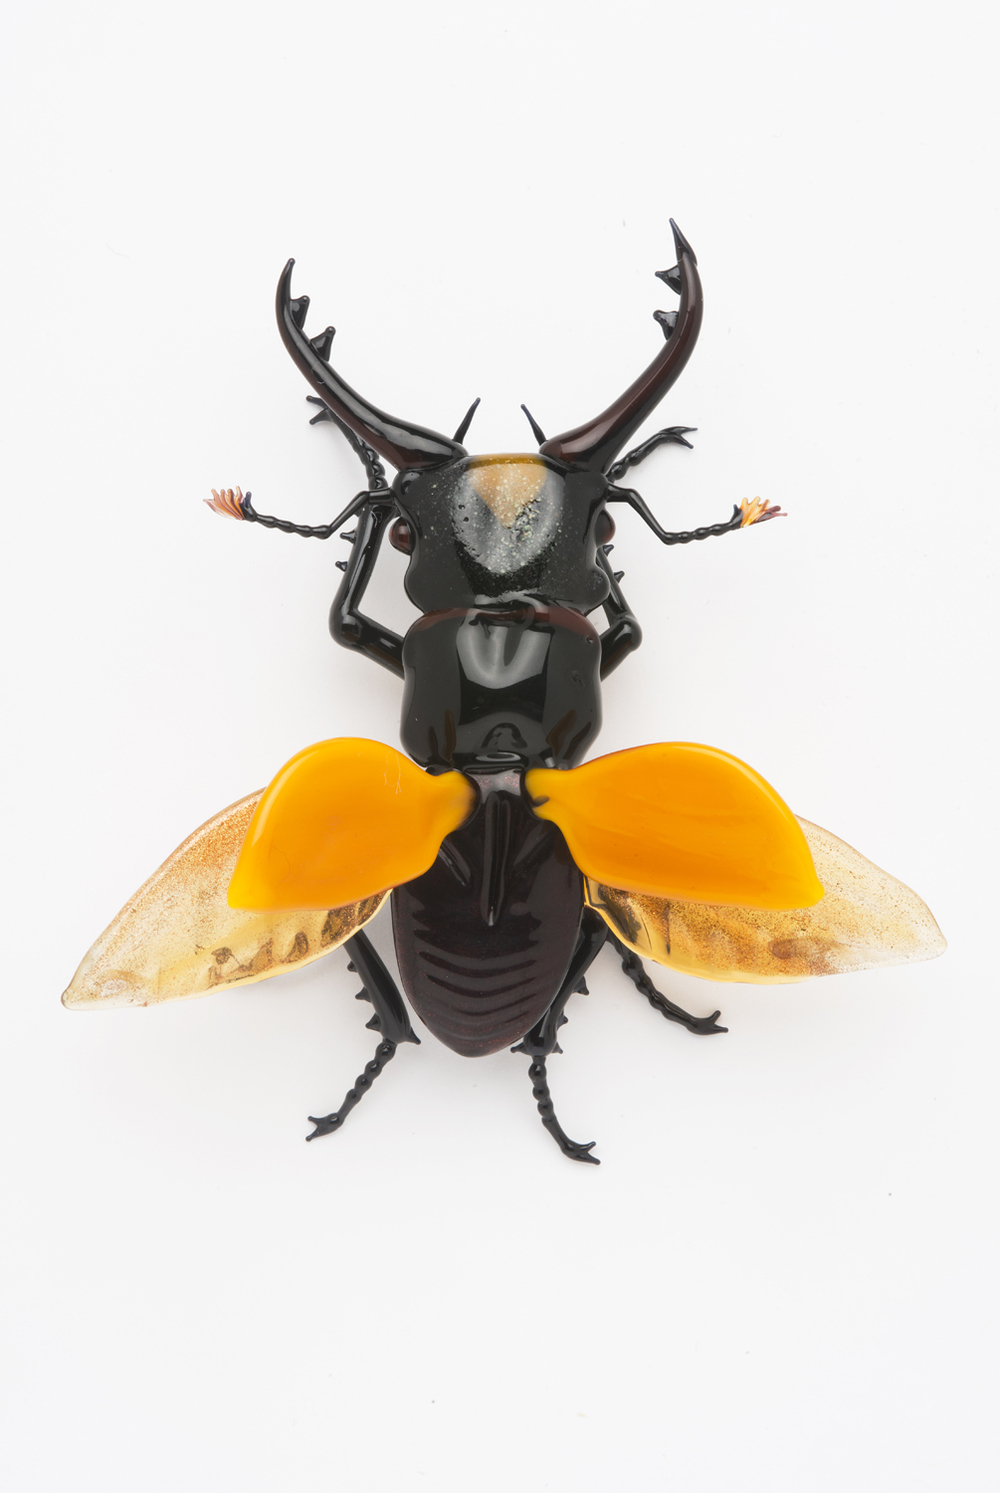 Vittorio Costantini,  Stag Beetle, open wings  (2006, soda-lime glass, 3 3/8 x 3 x 1 1/4 inches), VC.72